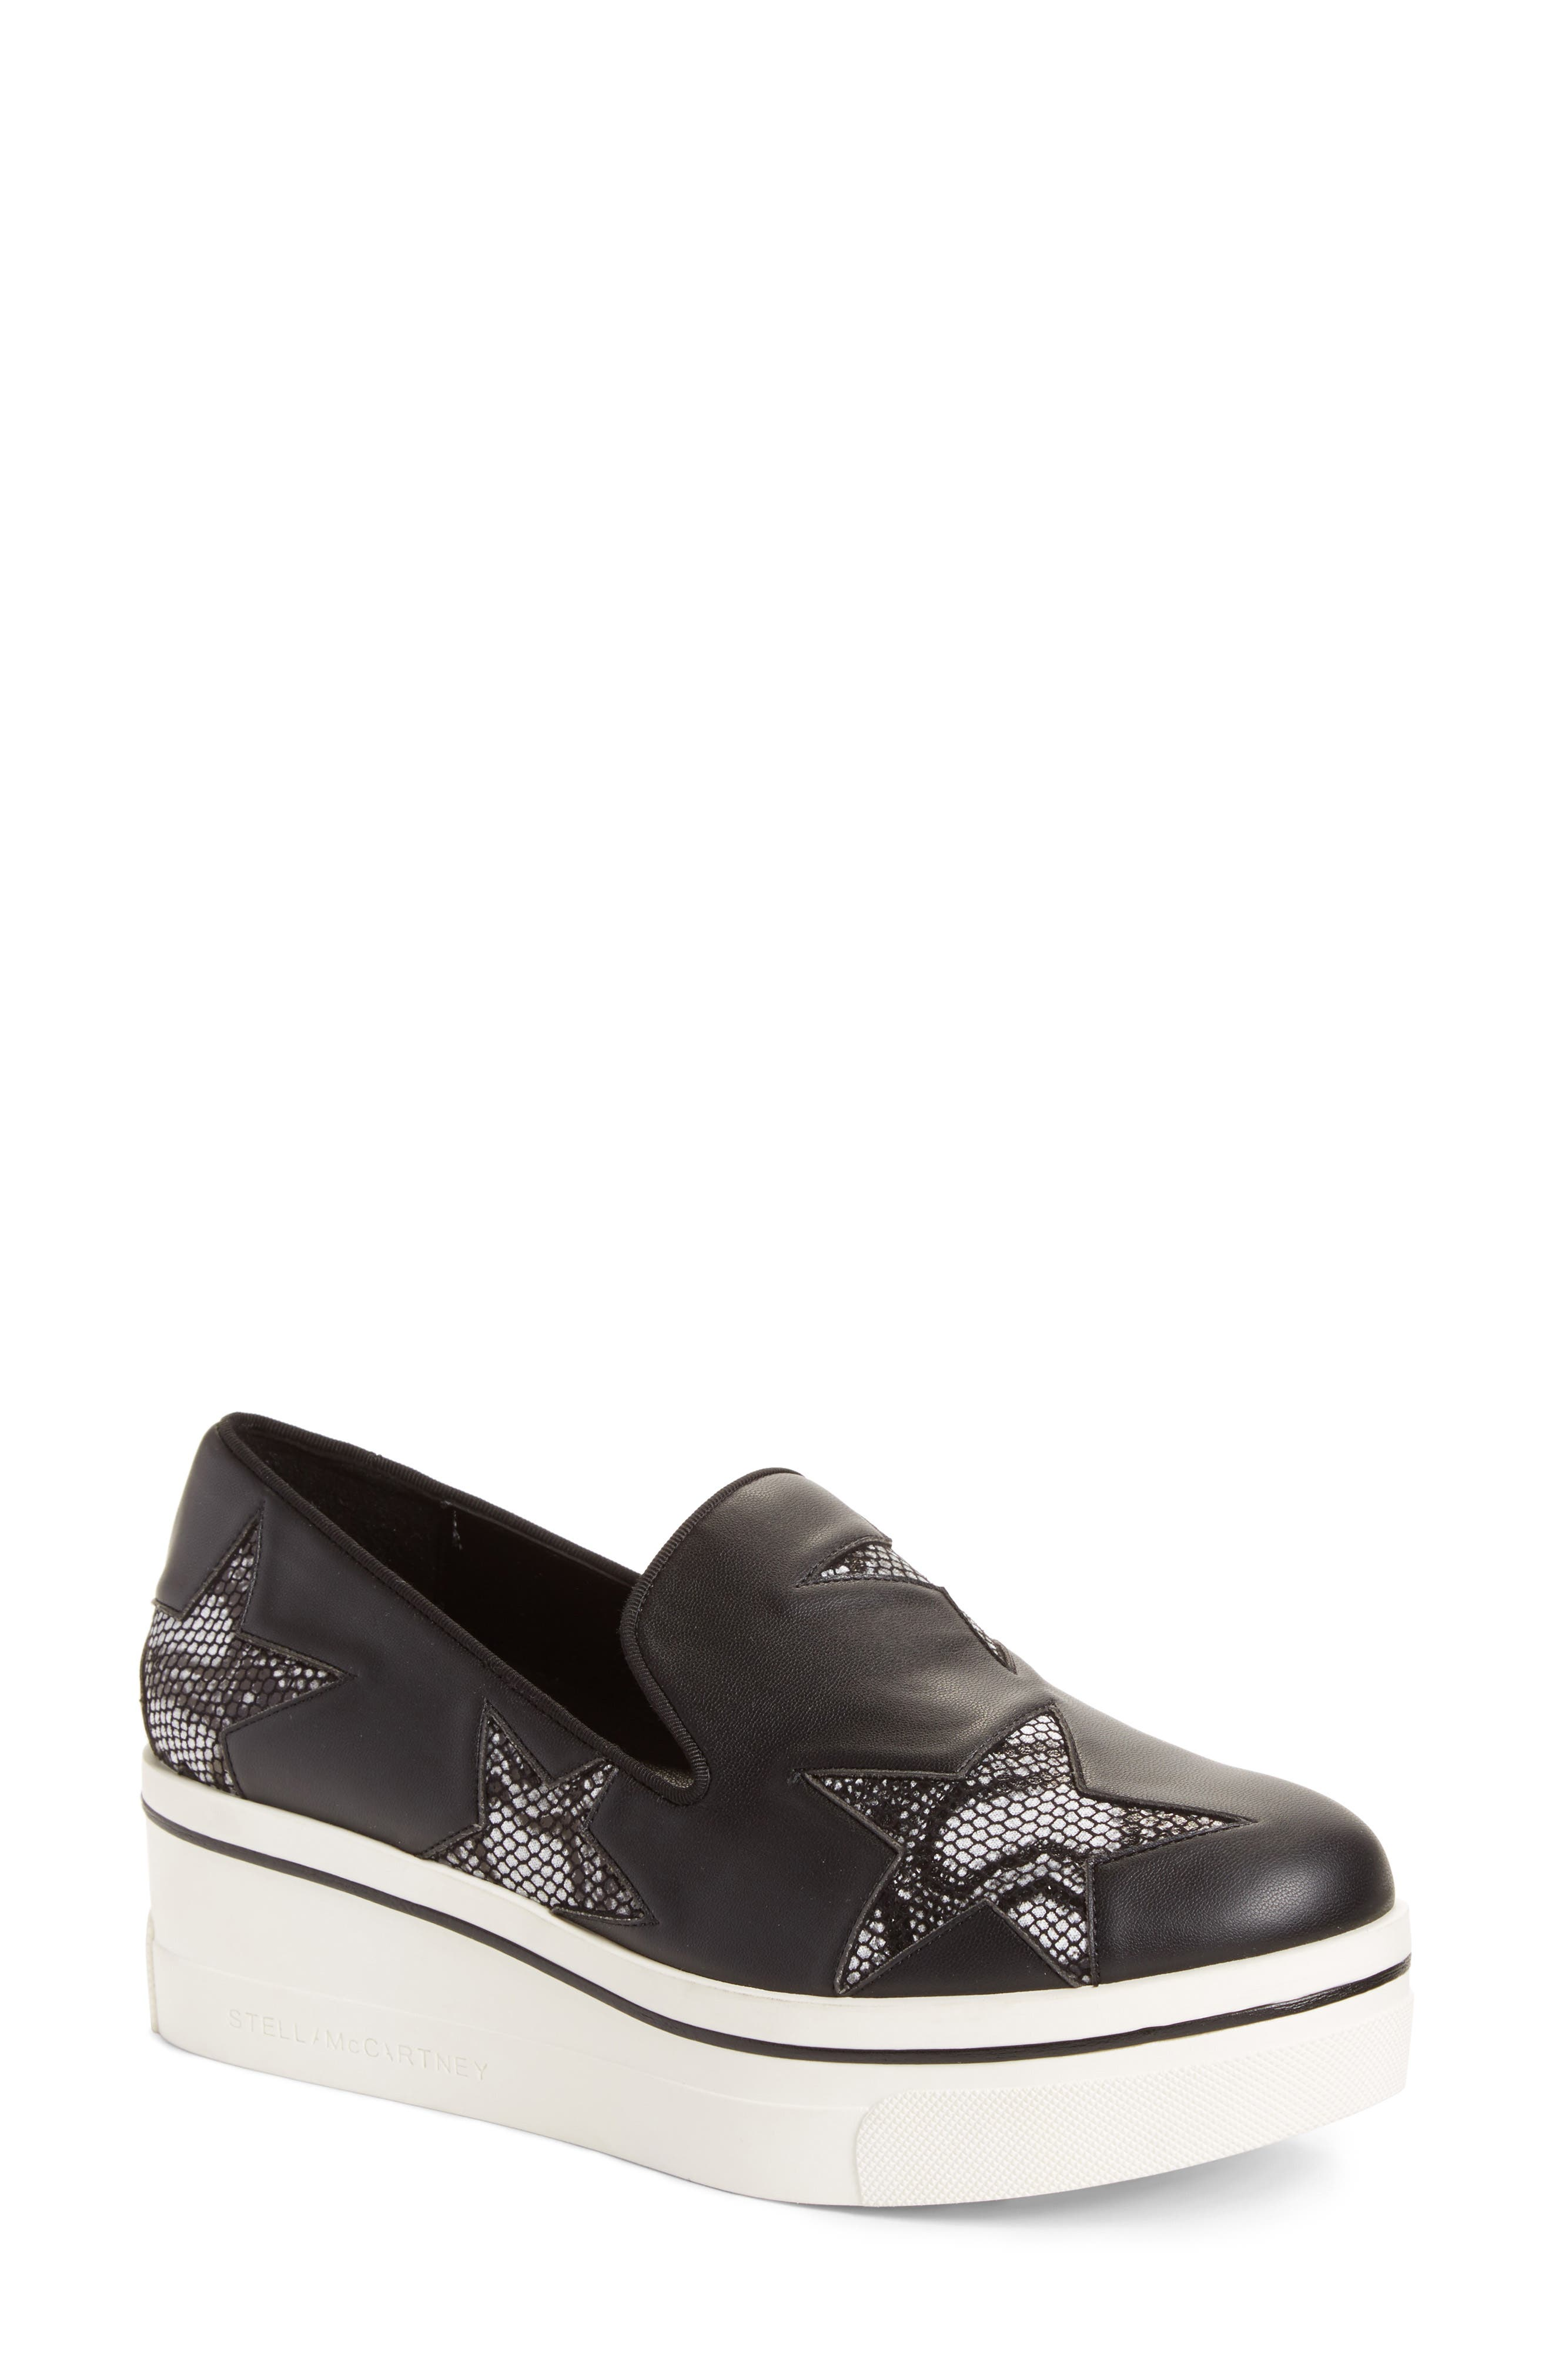 Alternate Image 1 Selected - Stella McCartney Binx Stars Platform Sneaker (Women)